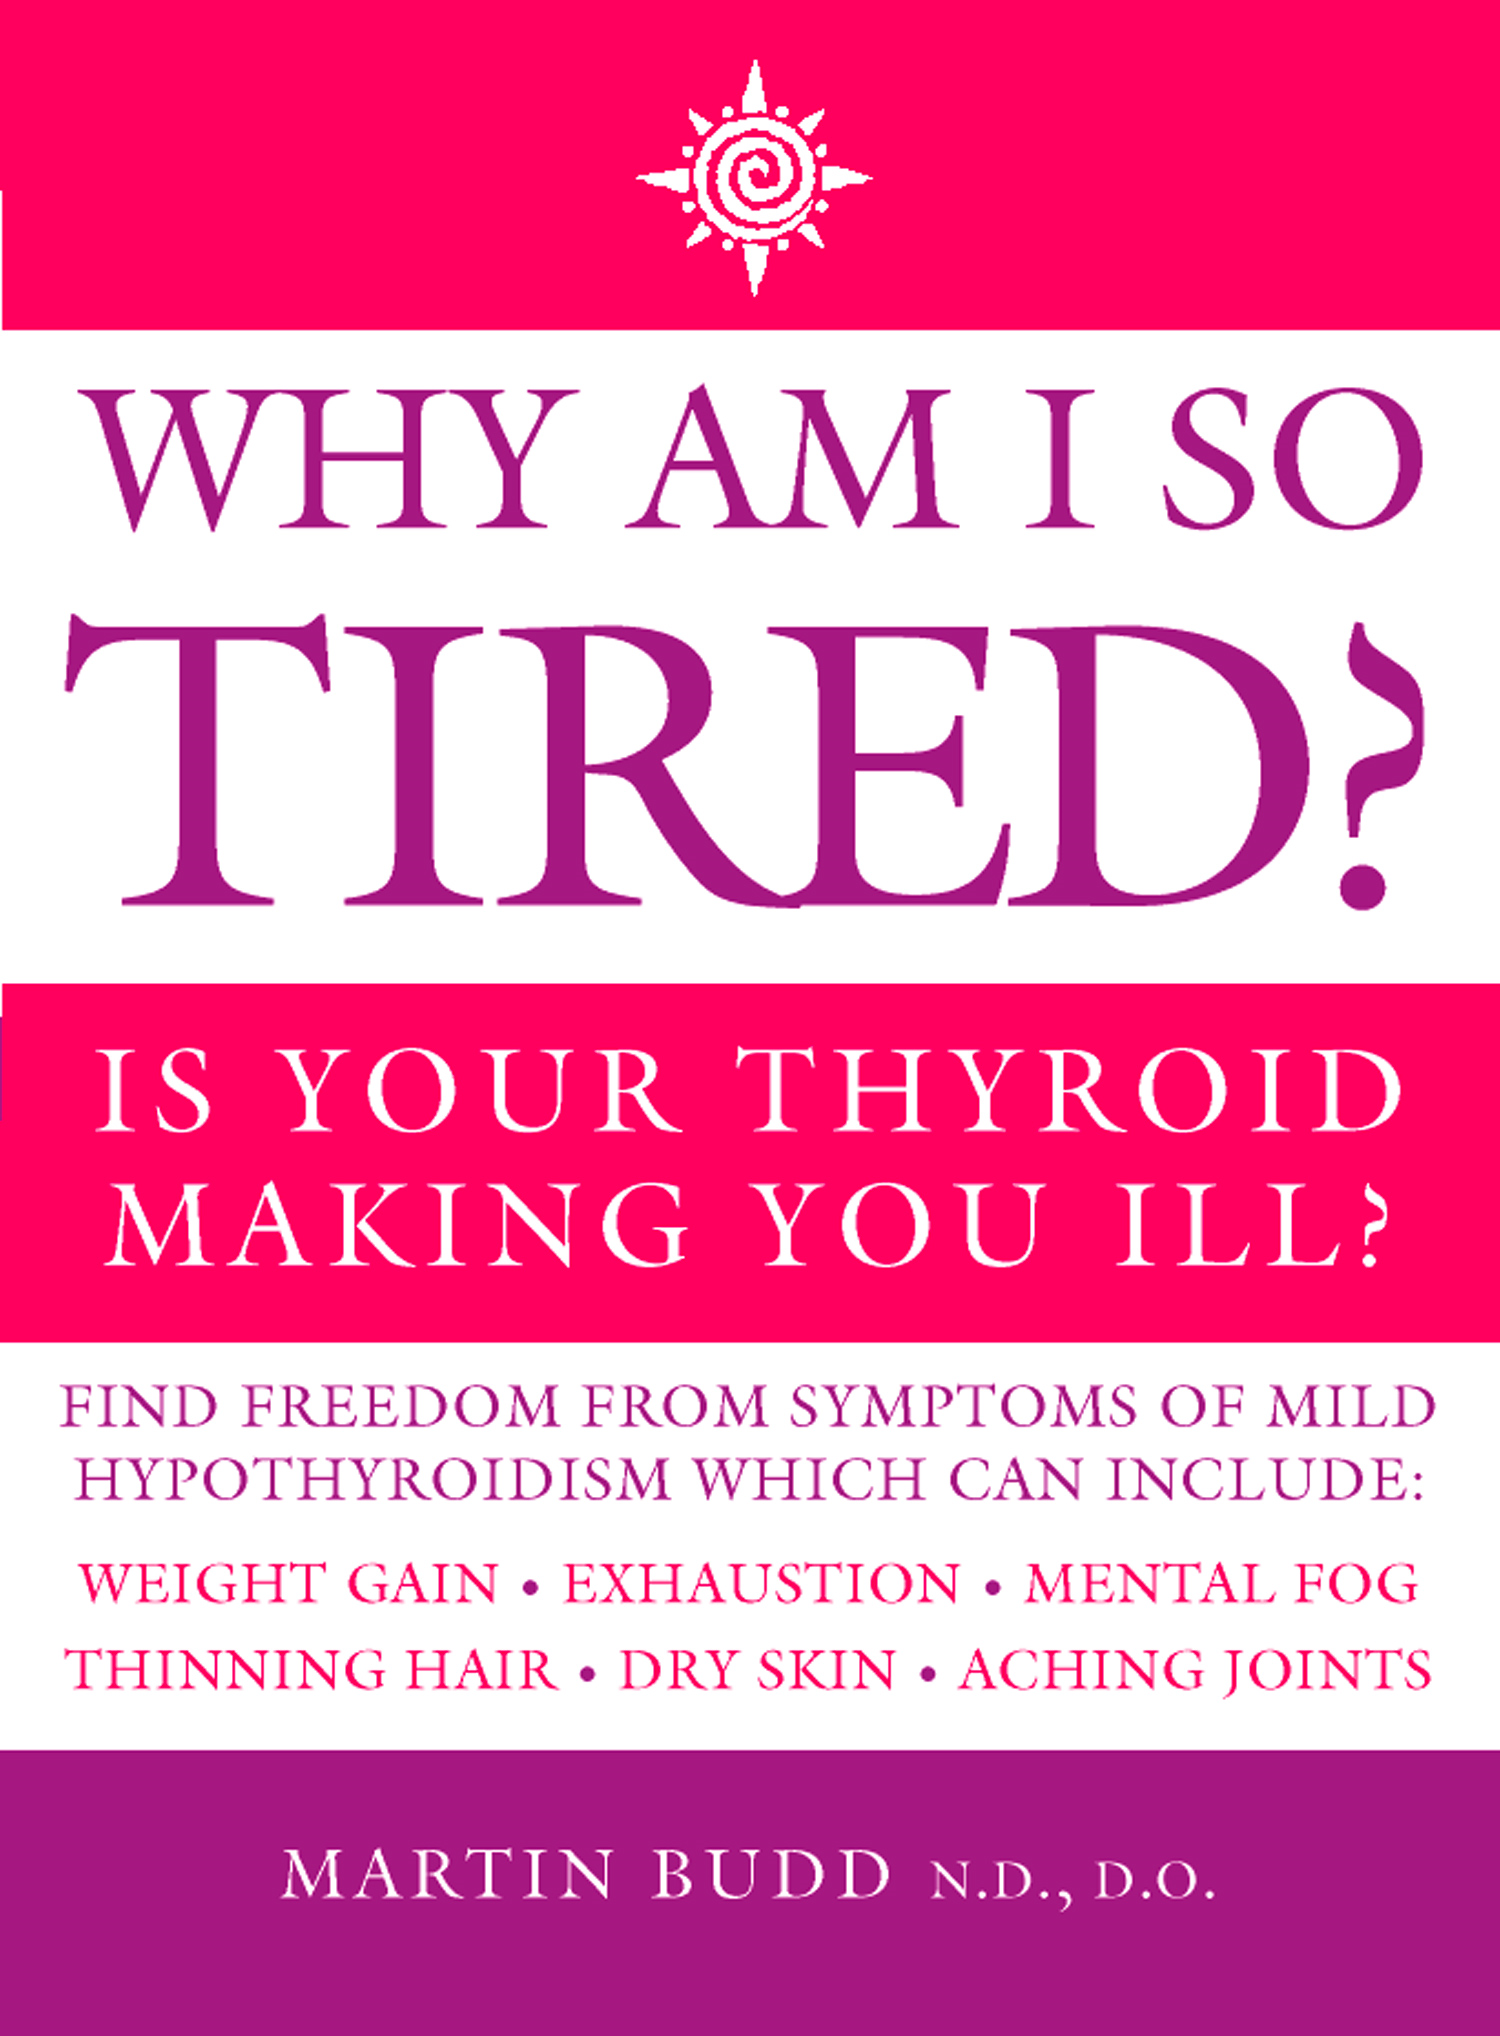 Why Am I So Tired?: Is your thyroid making you ill? By: Martin Budd, N.D., D.O.